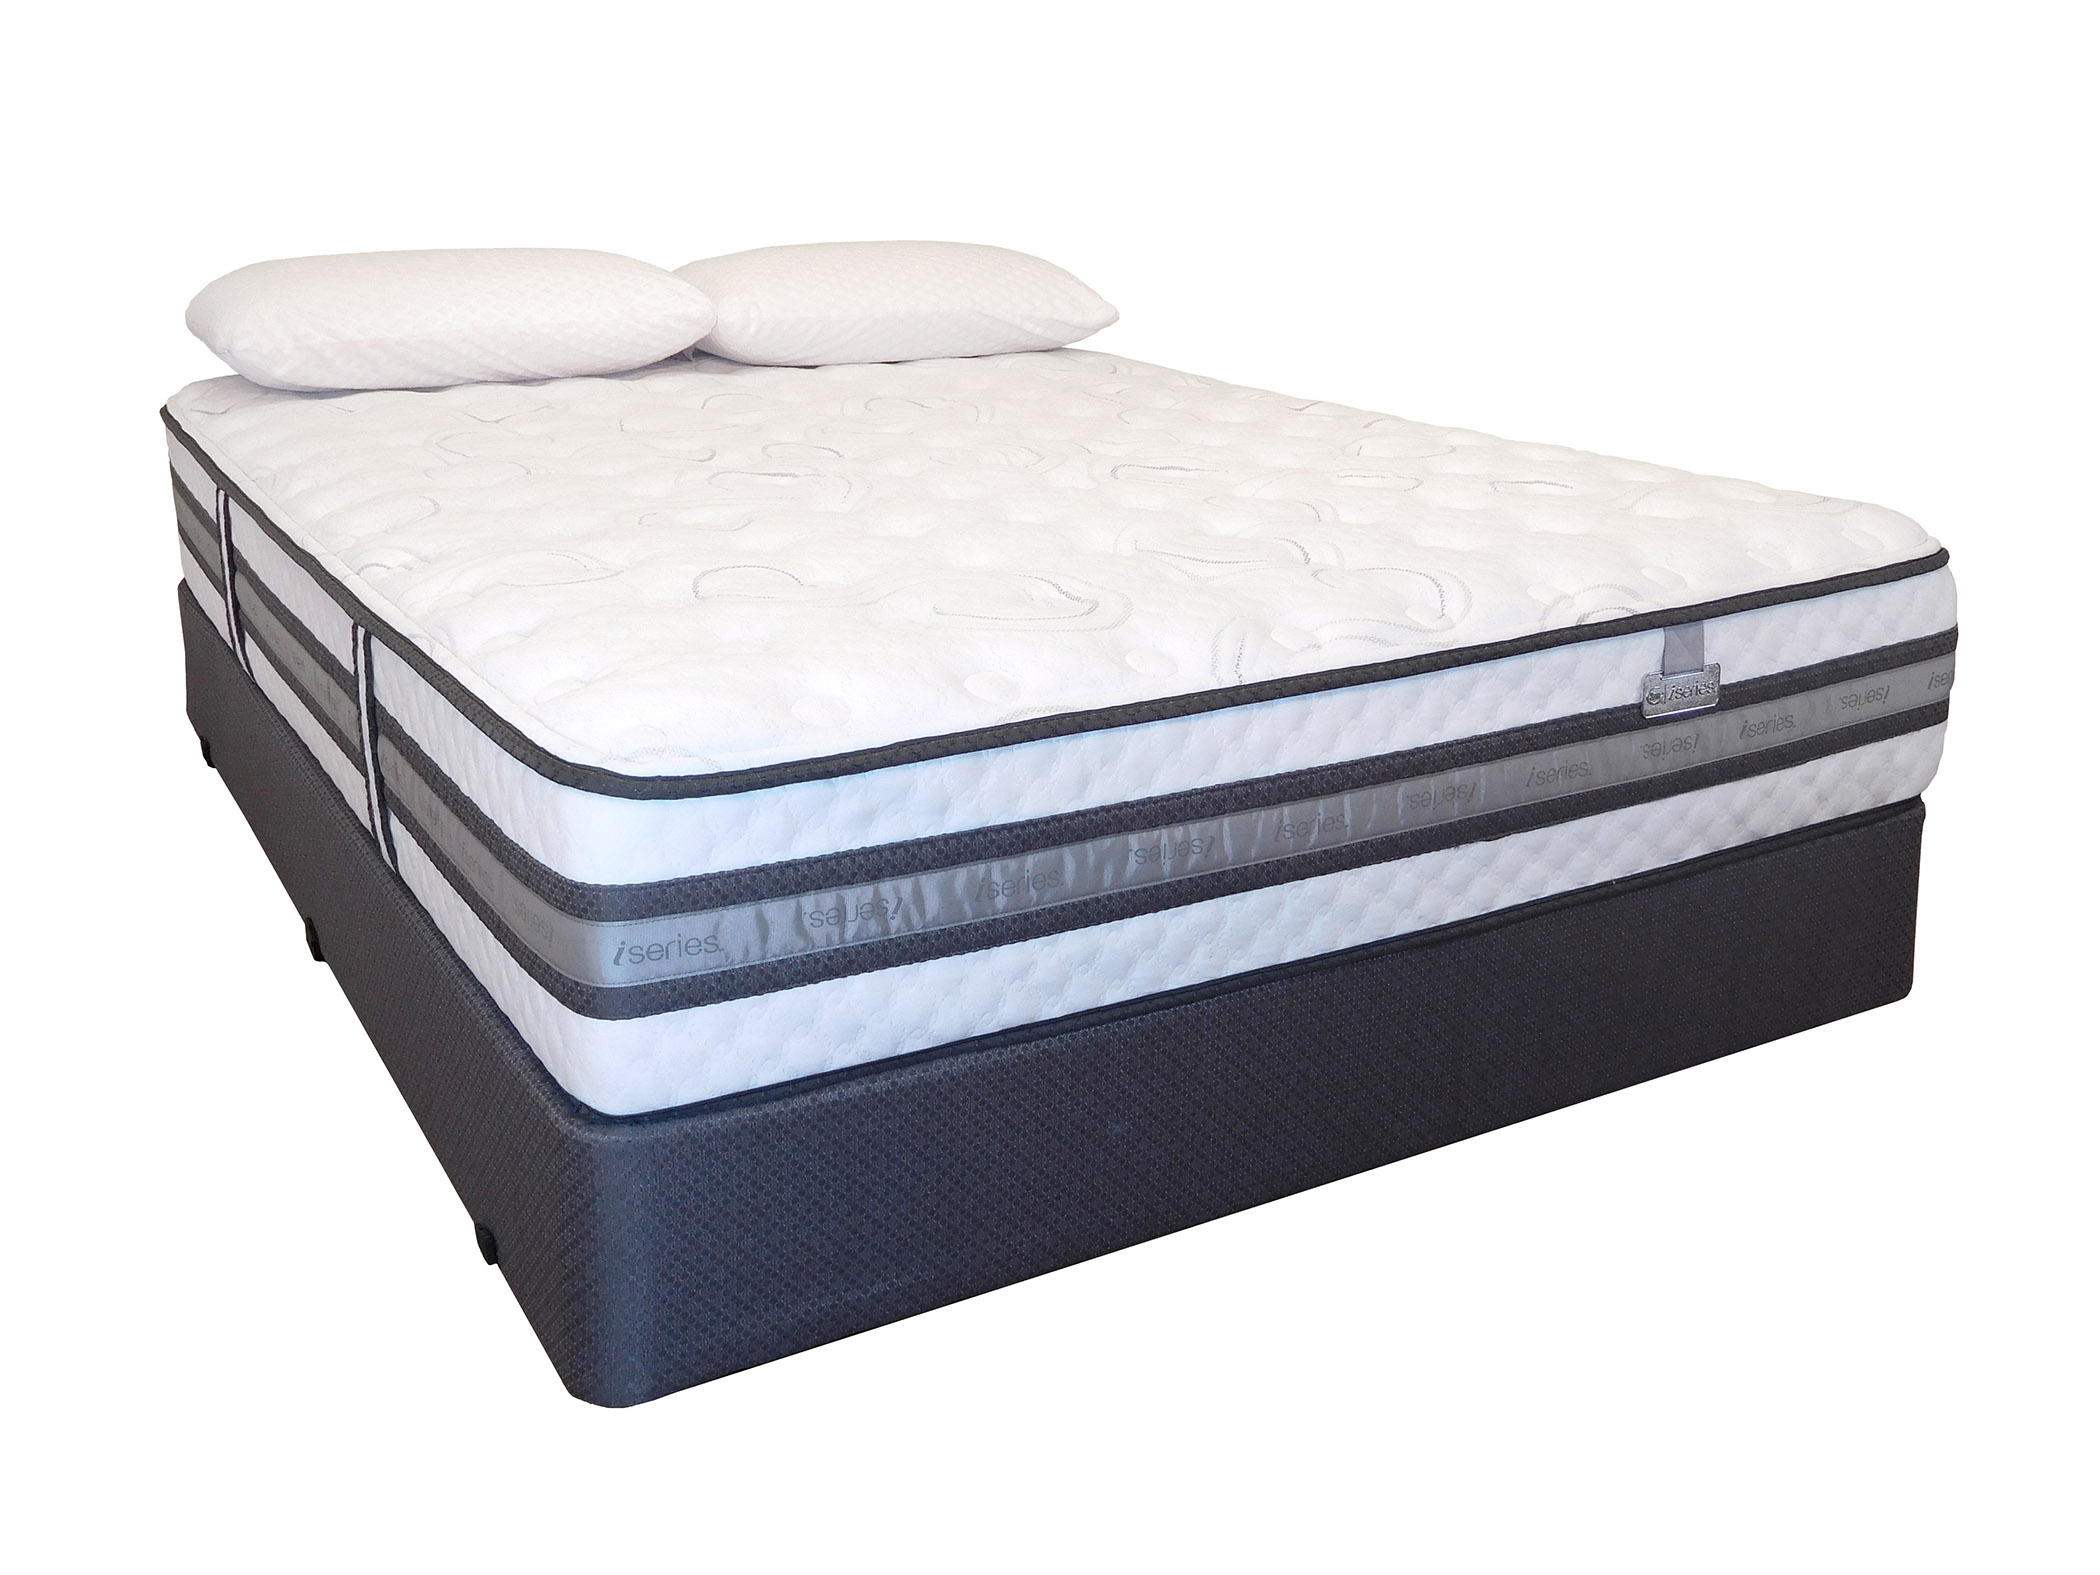 Serta iseries mattress resource for Serta iseries